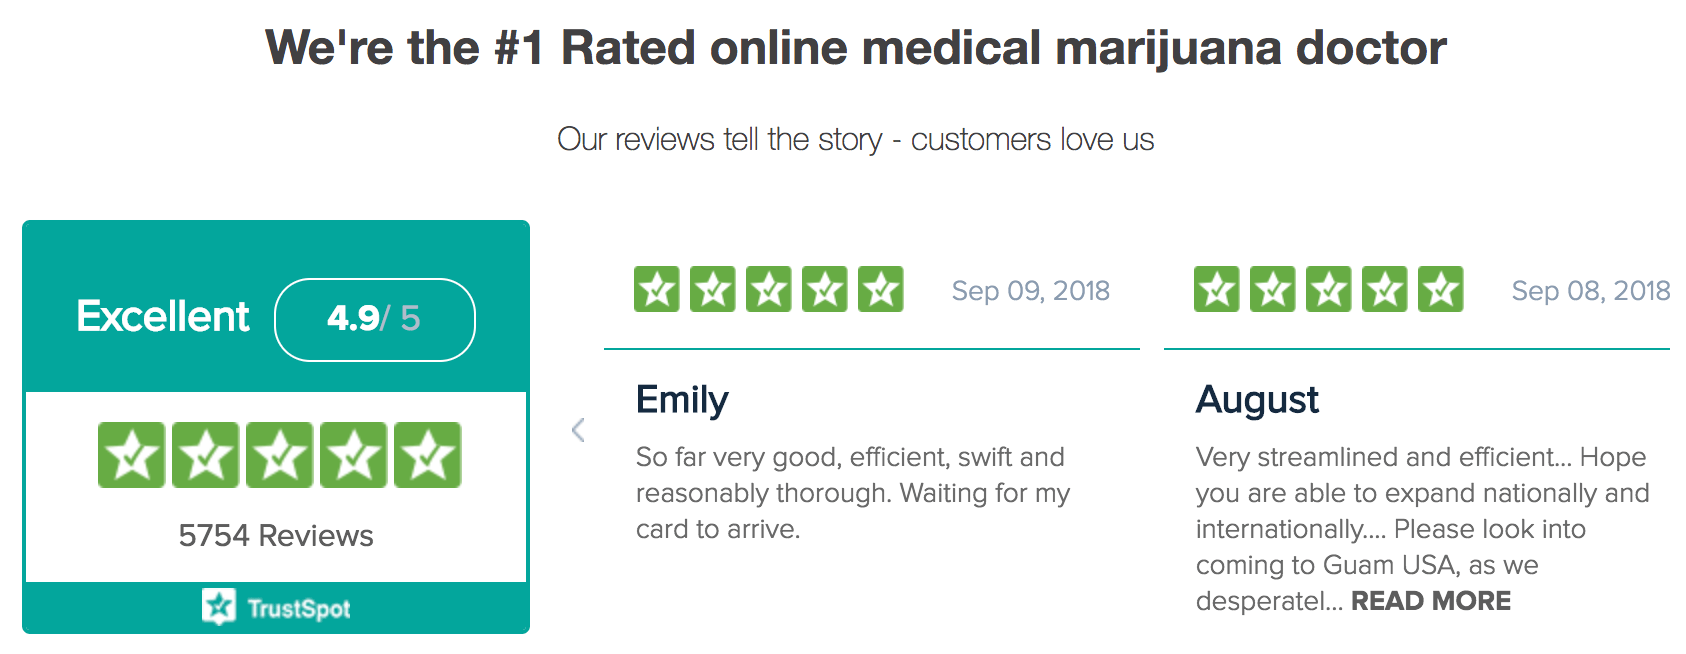 Medical Marijuana Card #1 Rated Online Service